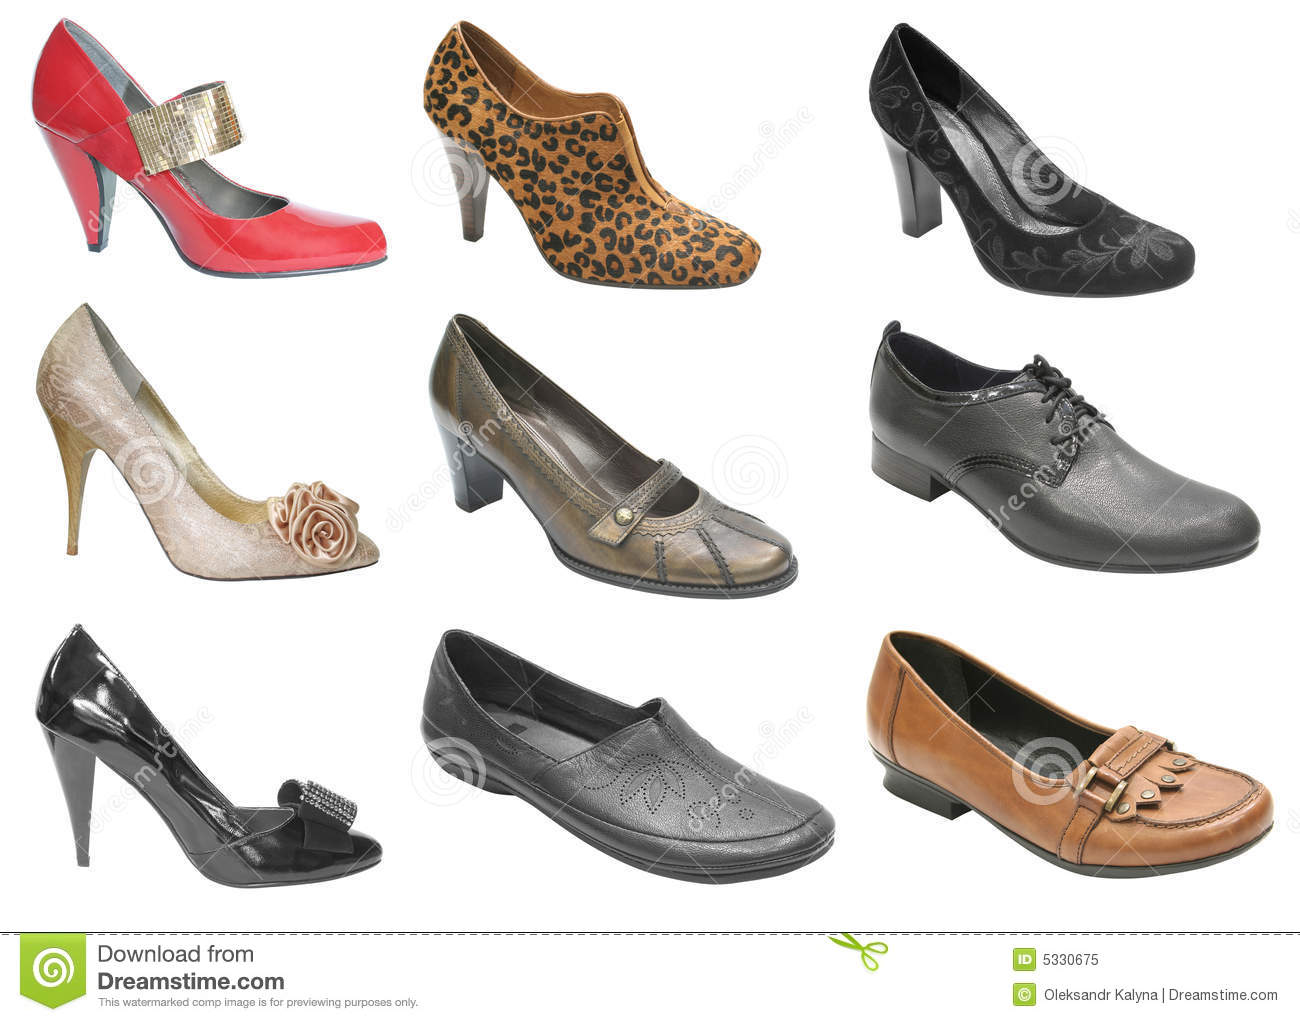 What You Have to Know About High Heels Shoes | Ona Wedding